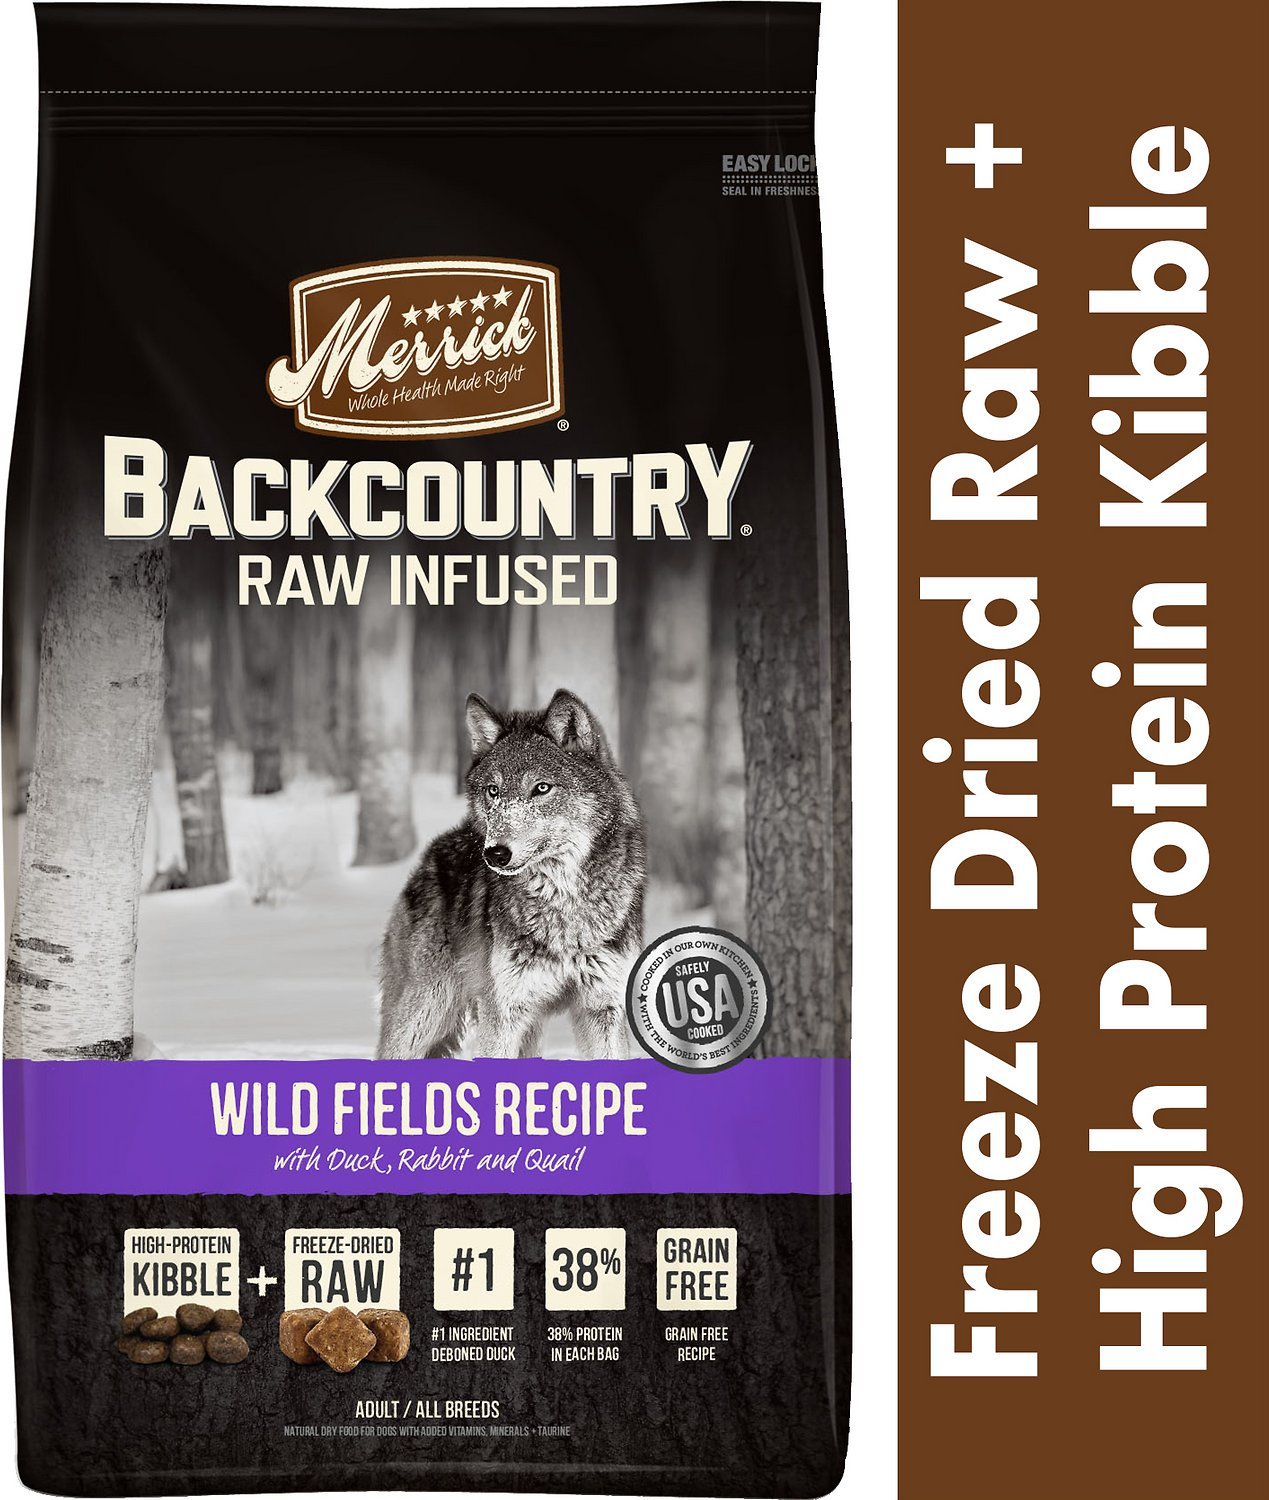 Merrick Backcountry Raw Infused Wild Fields Recipe Duck, Rabbit, & Quail Grain-Free Dry Dog Food, 4-lb